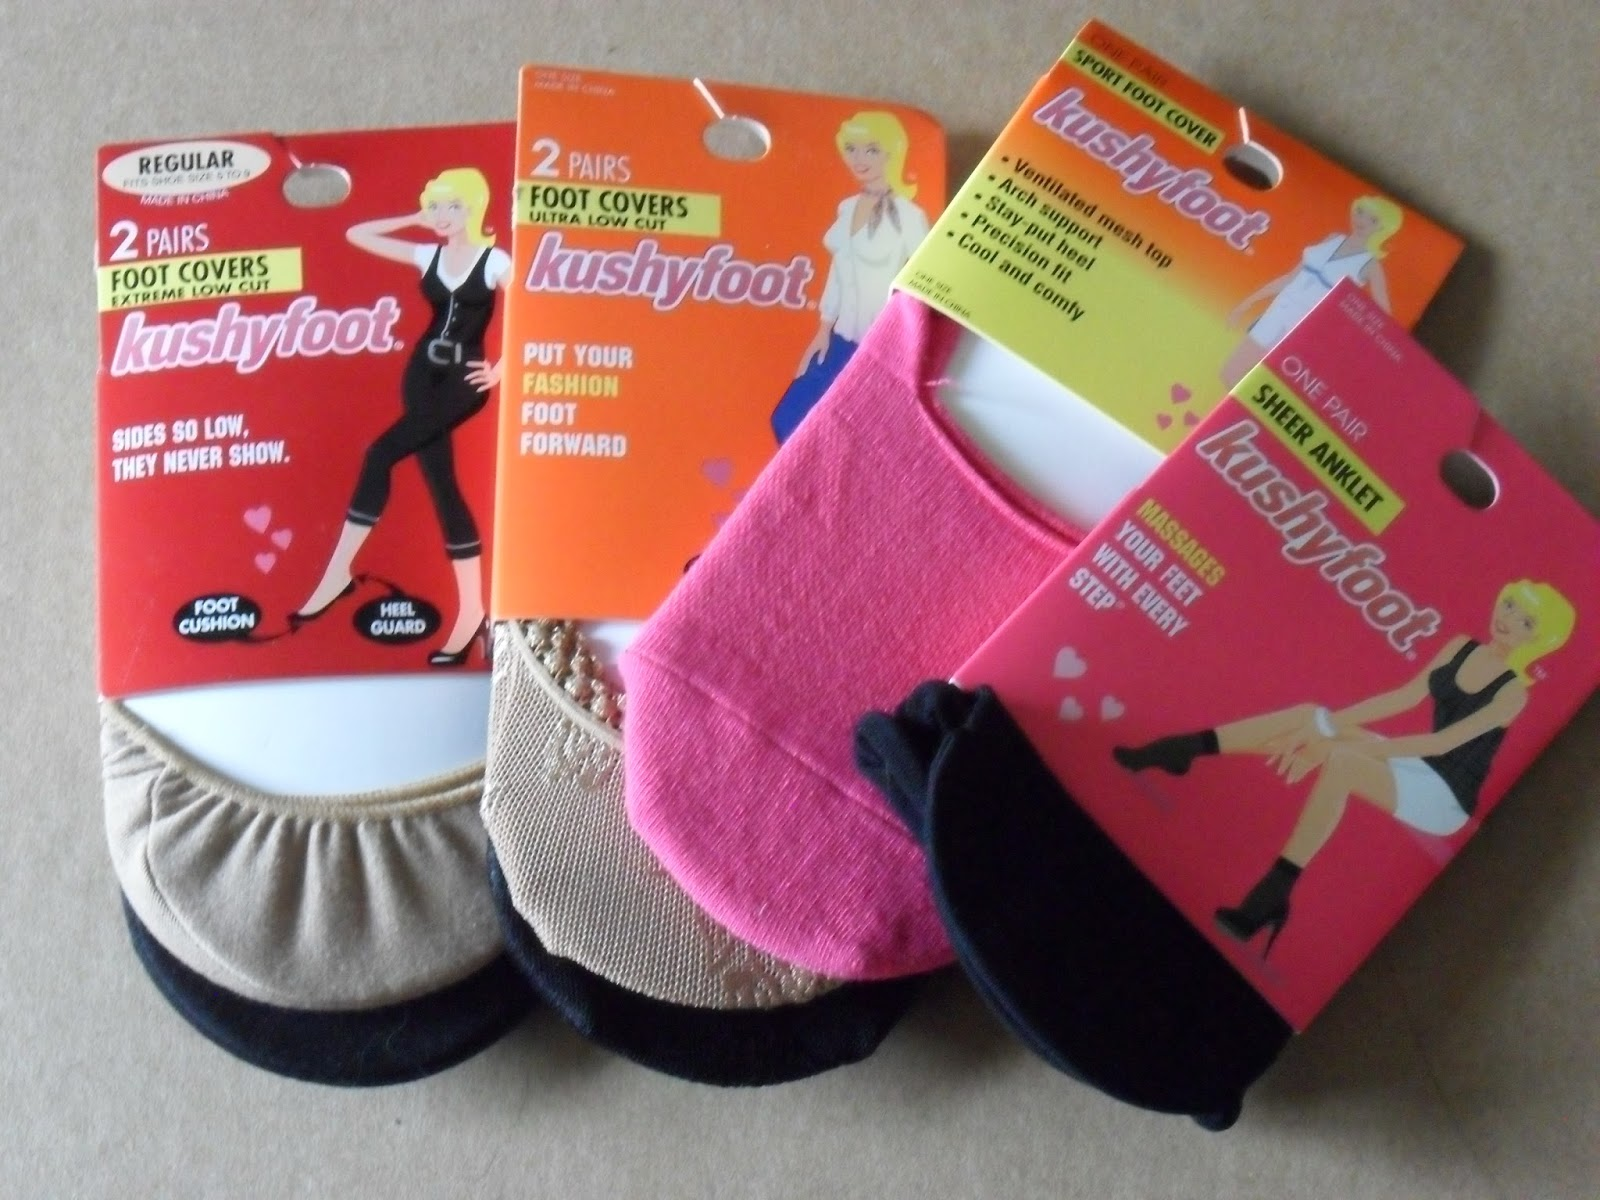 Kushyfoot, more than socks: a fashion statement . Review